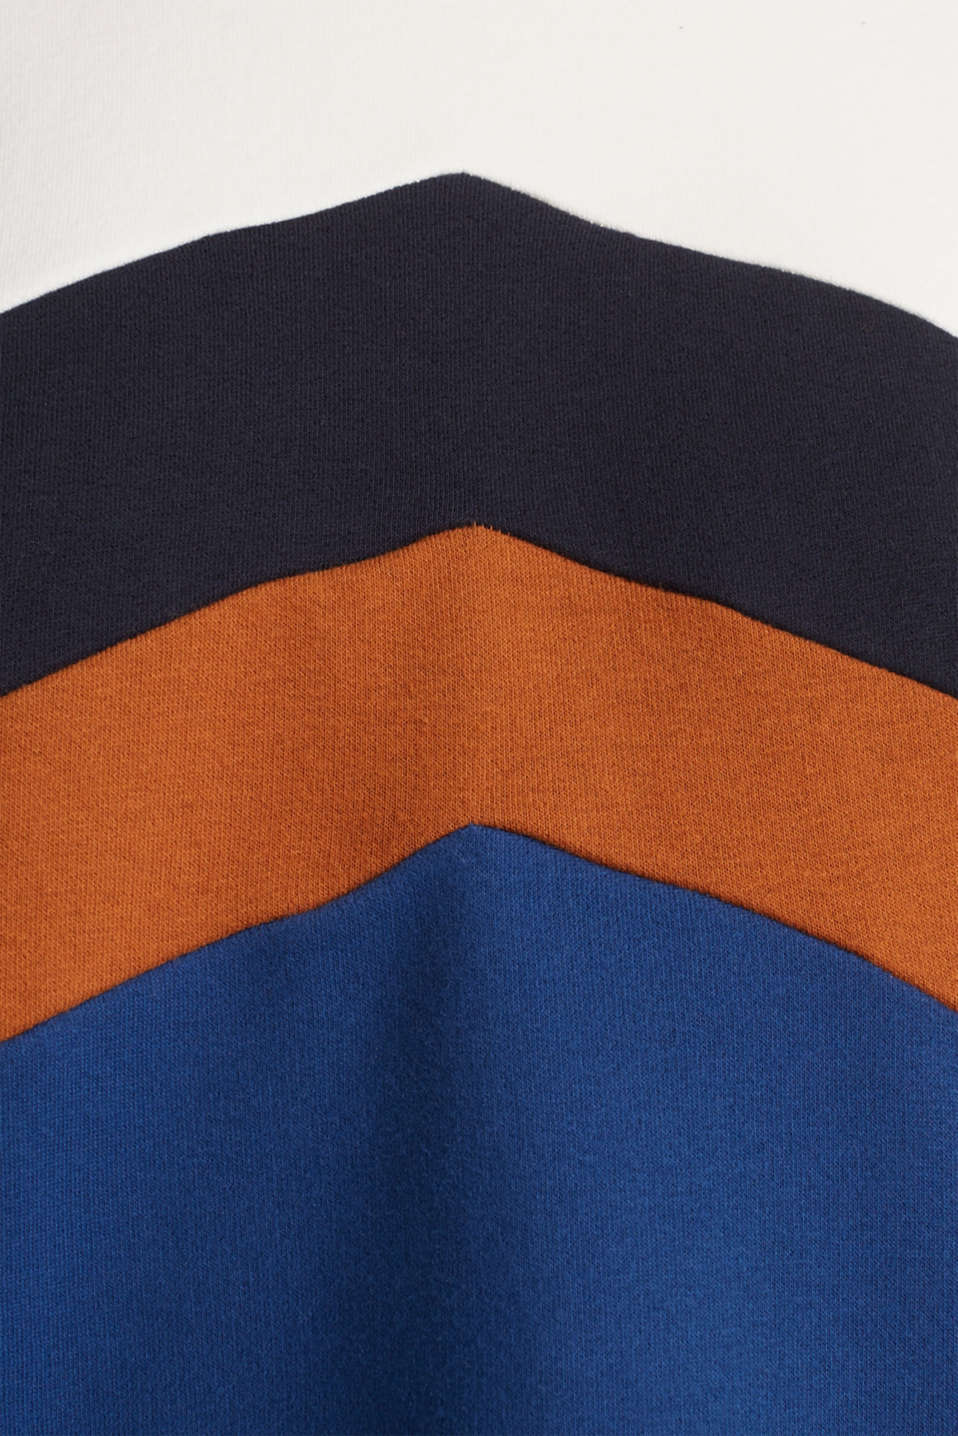 Sweatshirt with a colour block design, DARK BLUE, detail image number 4